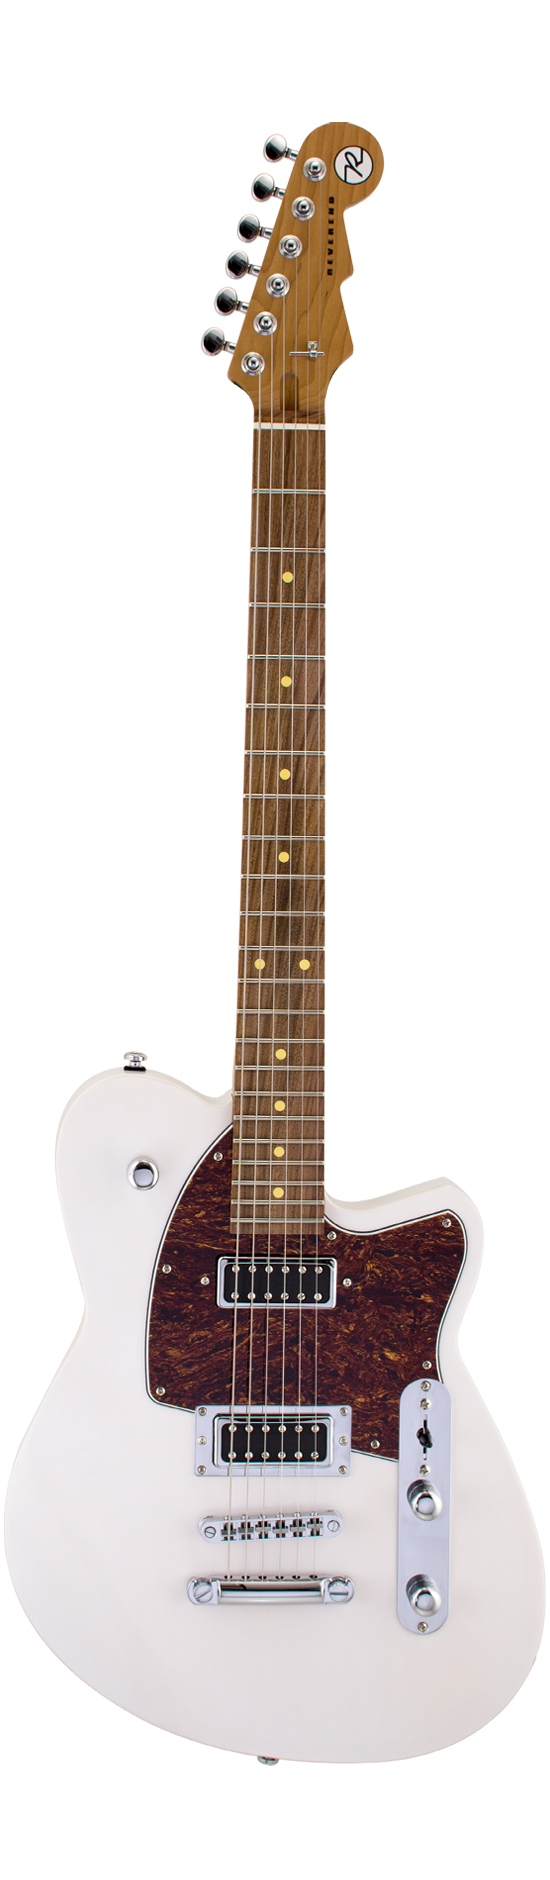 Reverend Guitars Flatroc